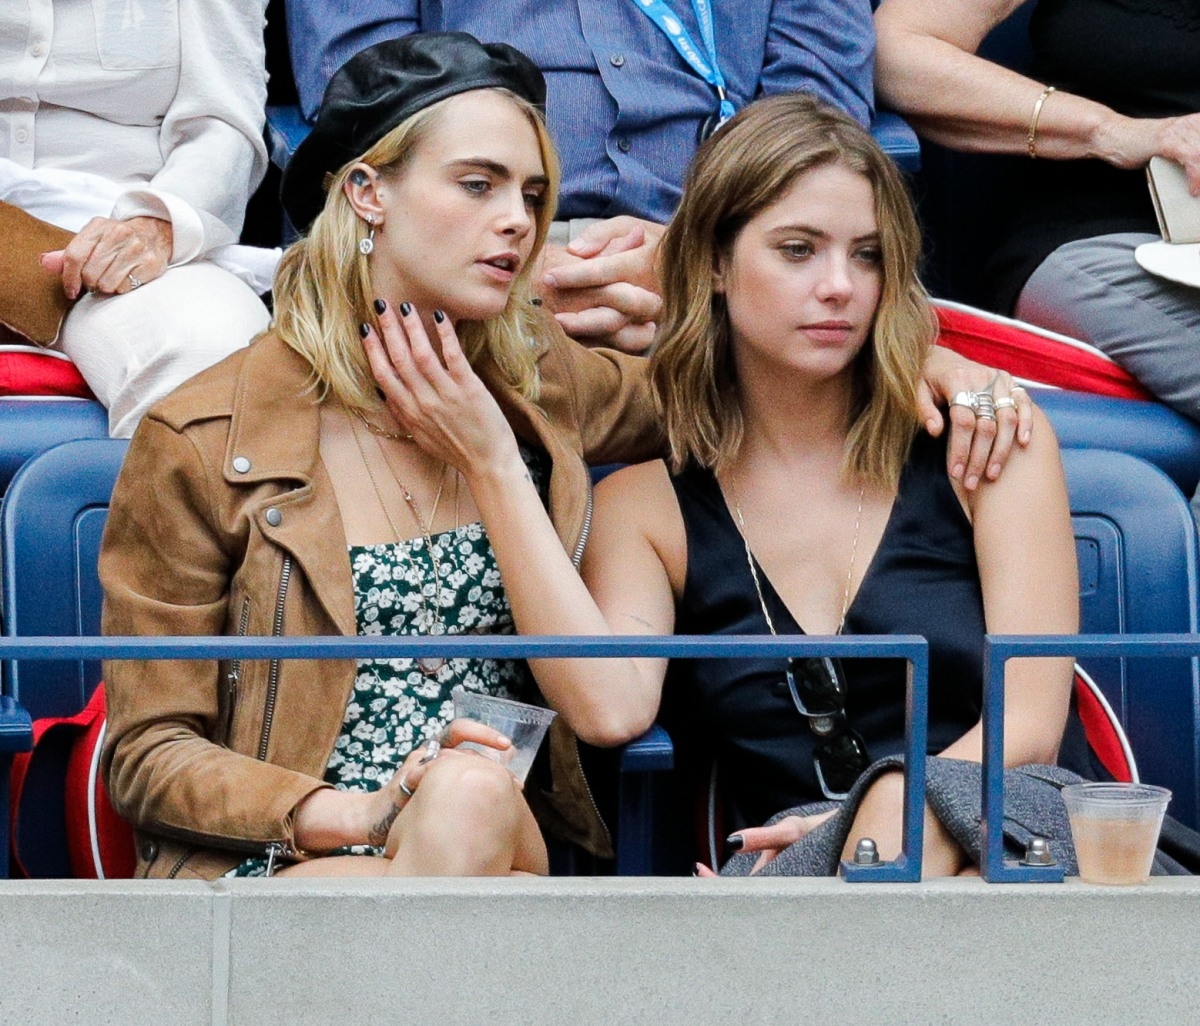 Cara Delevingne and Ashley Benson attend the Women's Singles final match of the 2019 US Open at the USTA Billie Jean King National Tennis Center on September 07, 2019